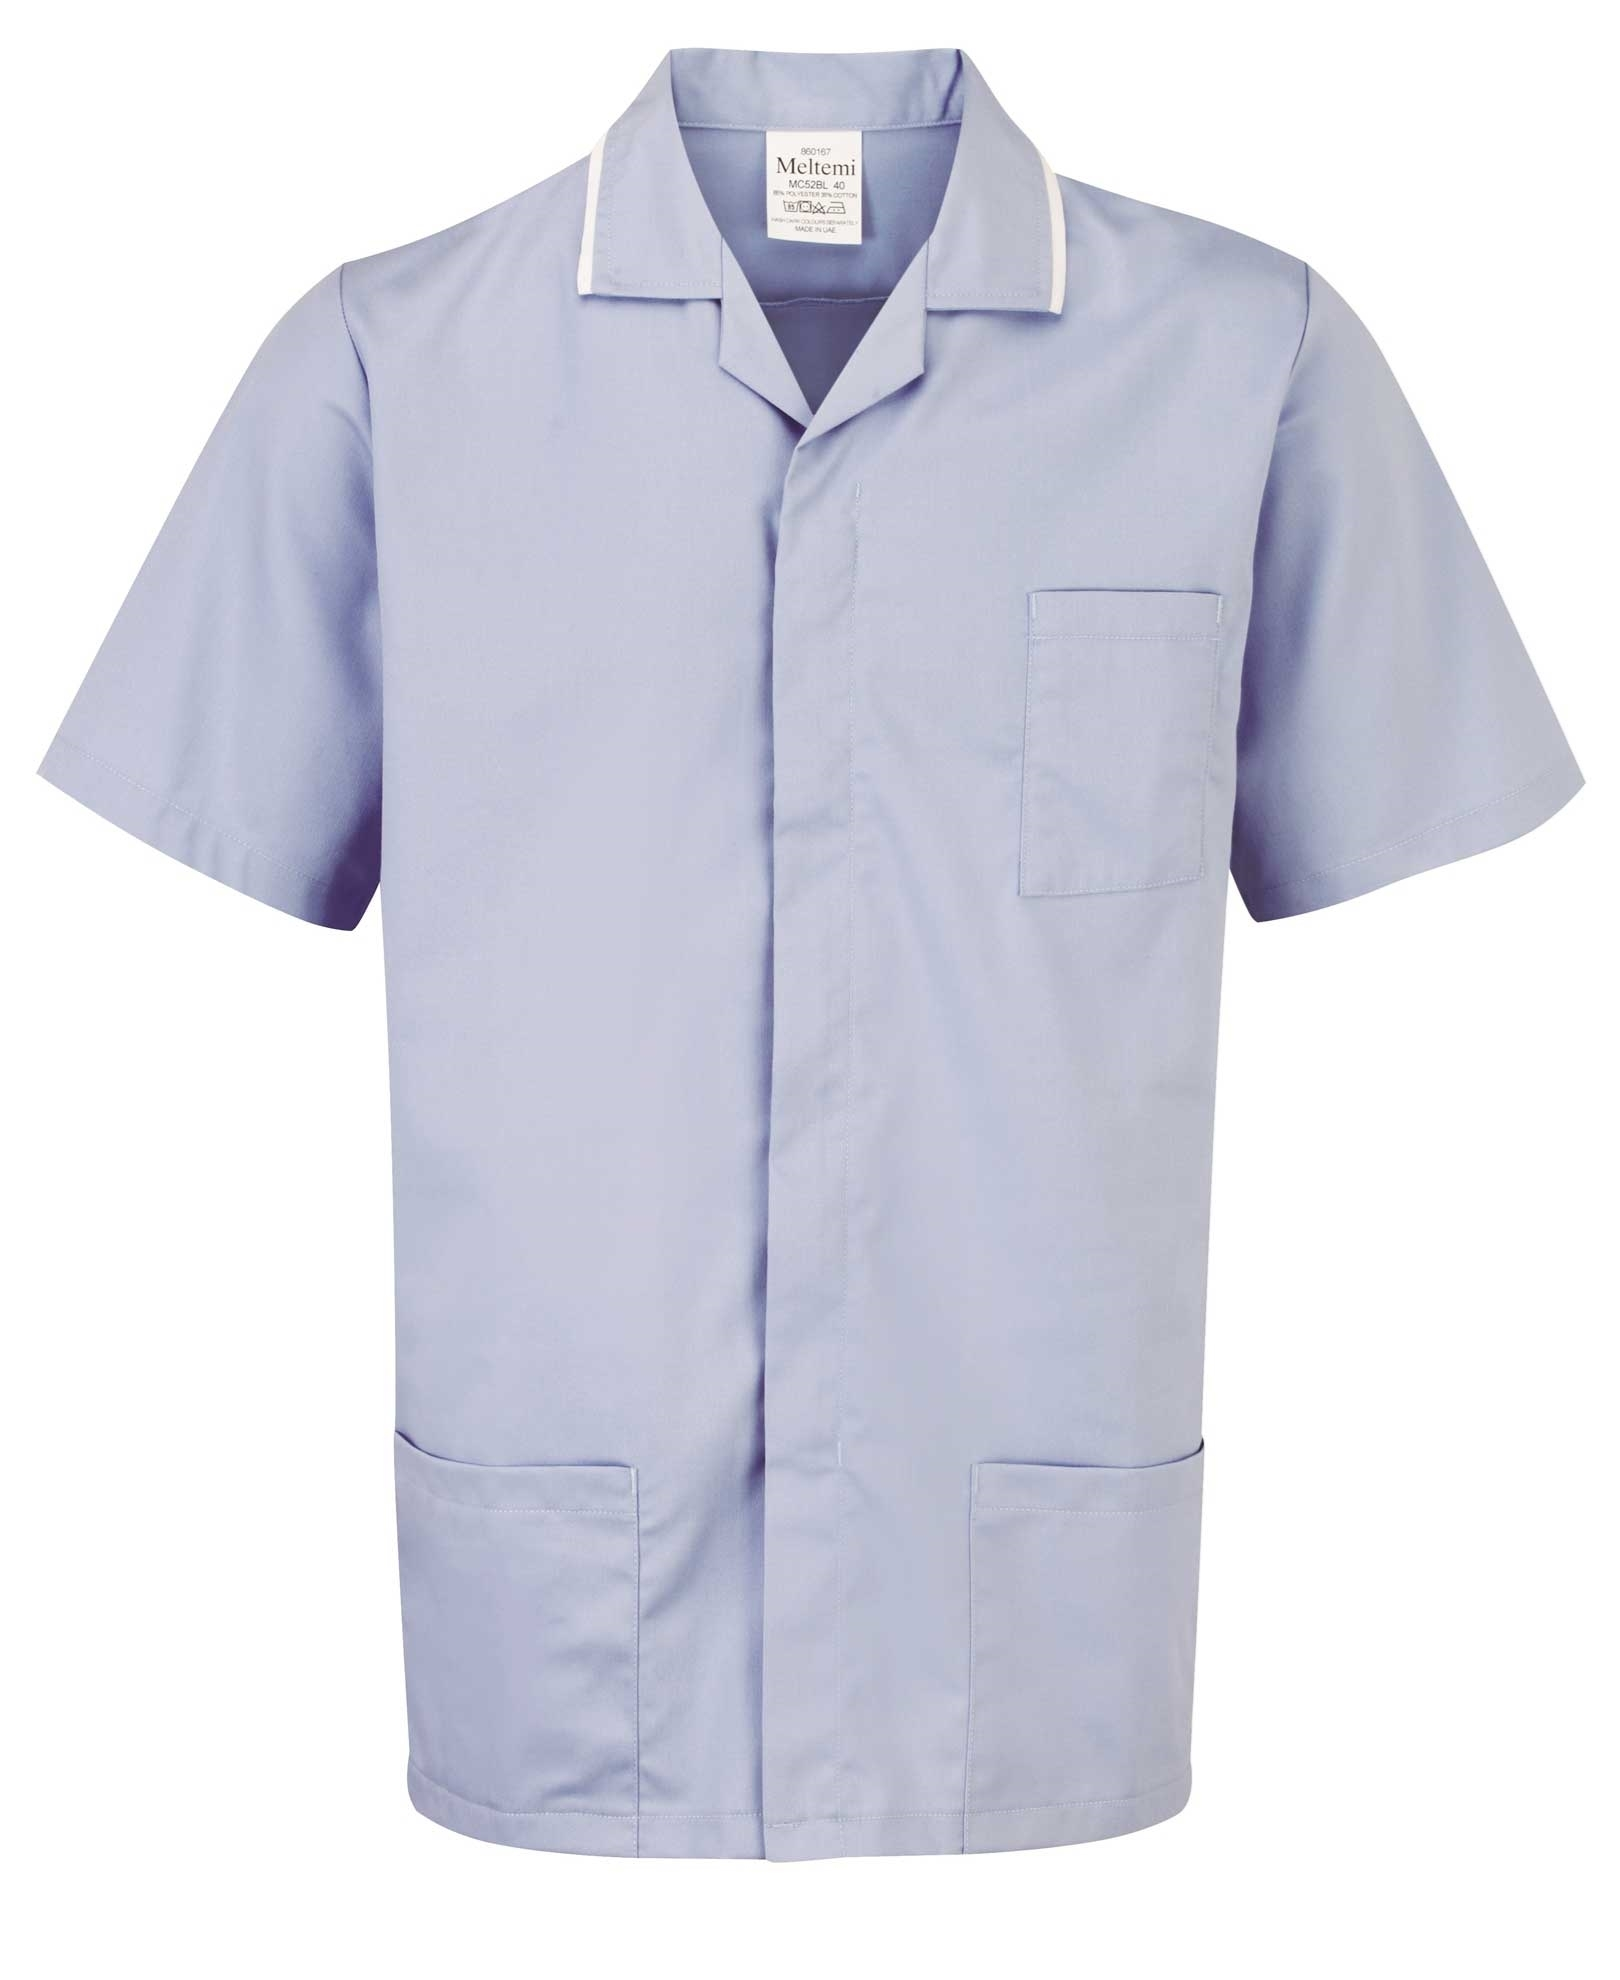 Picture of Advantage Front Fastening Tunic - Sky Blue/White